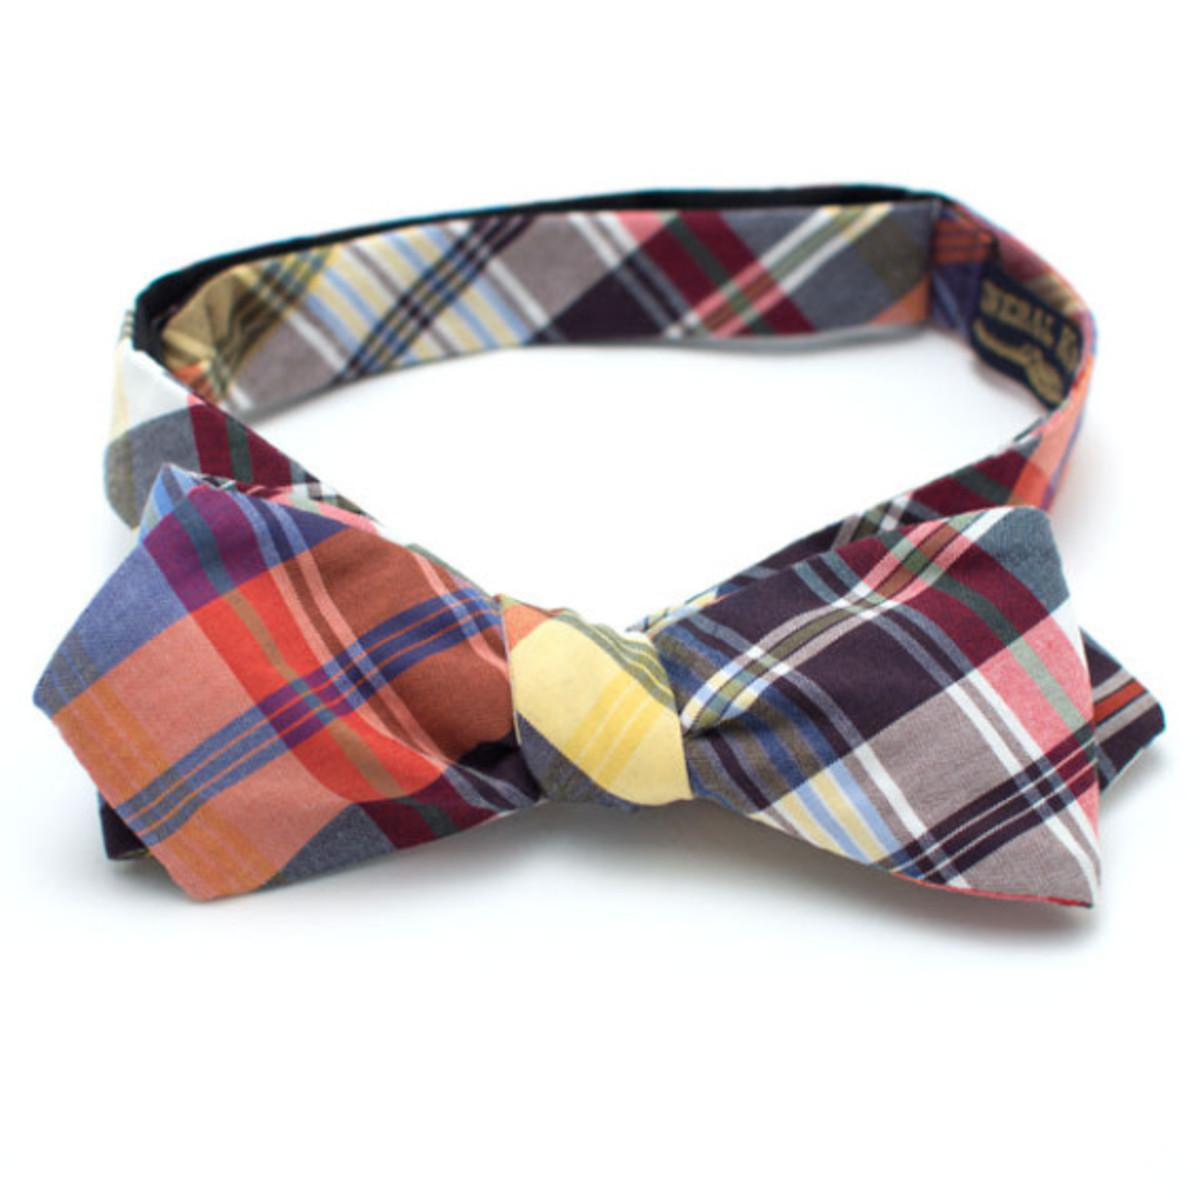 general-knot-and-co-portland-family-neckwear-collection-14